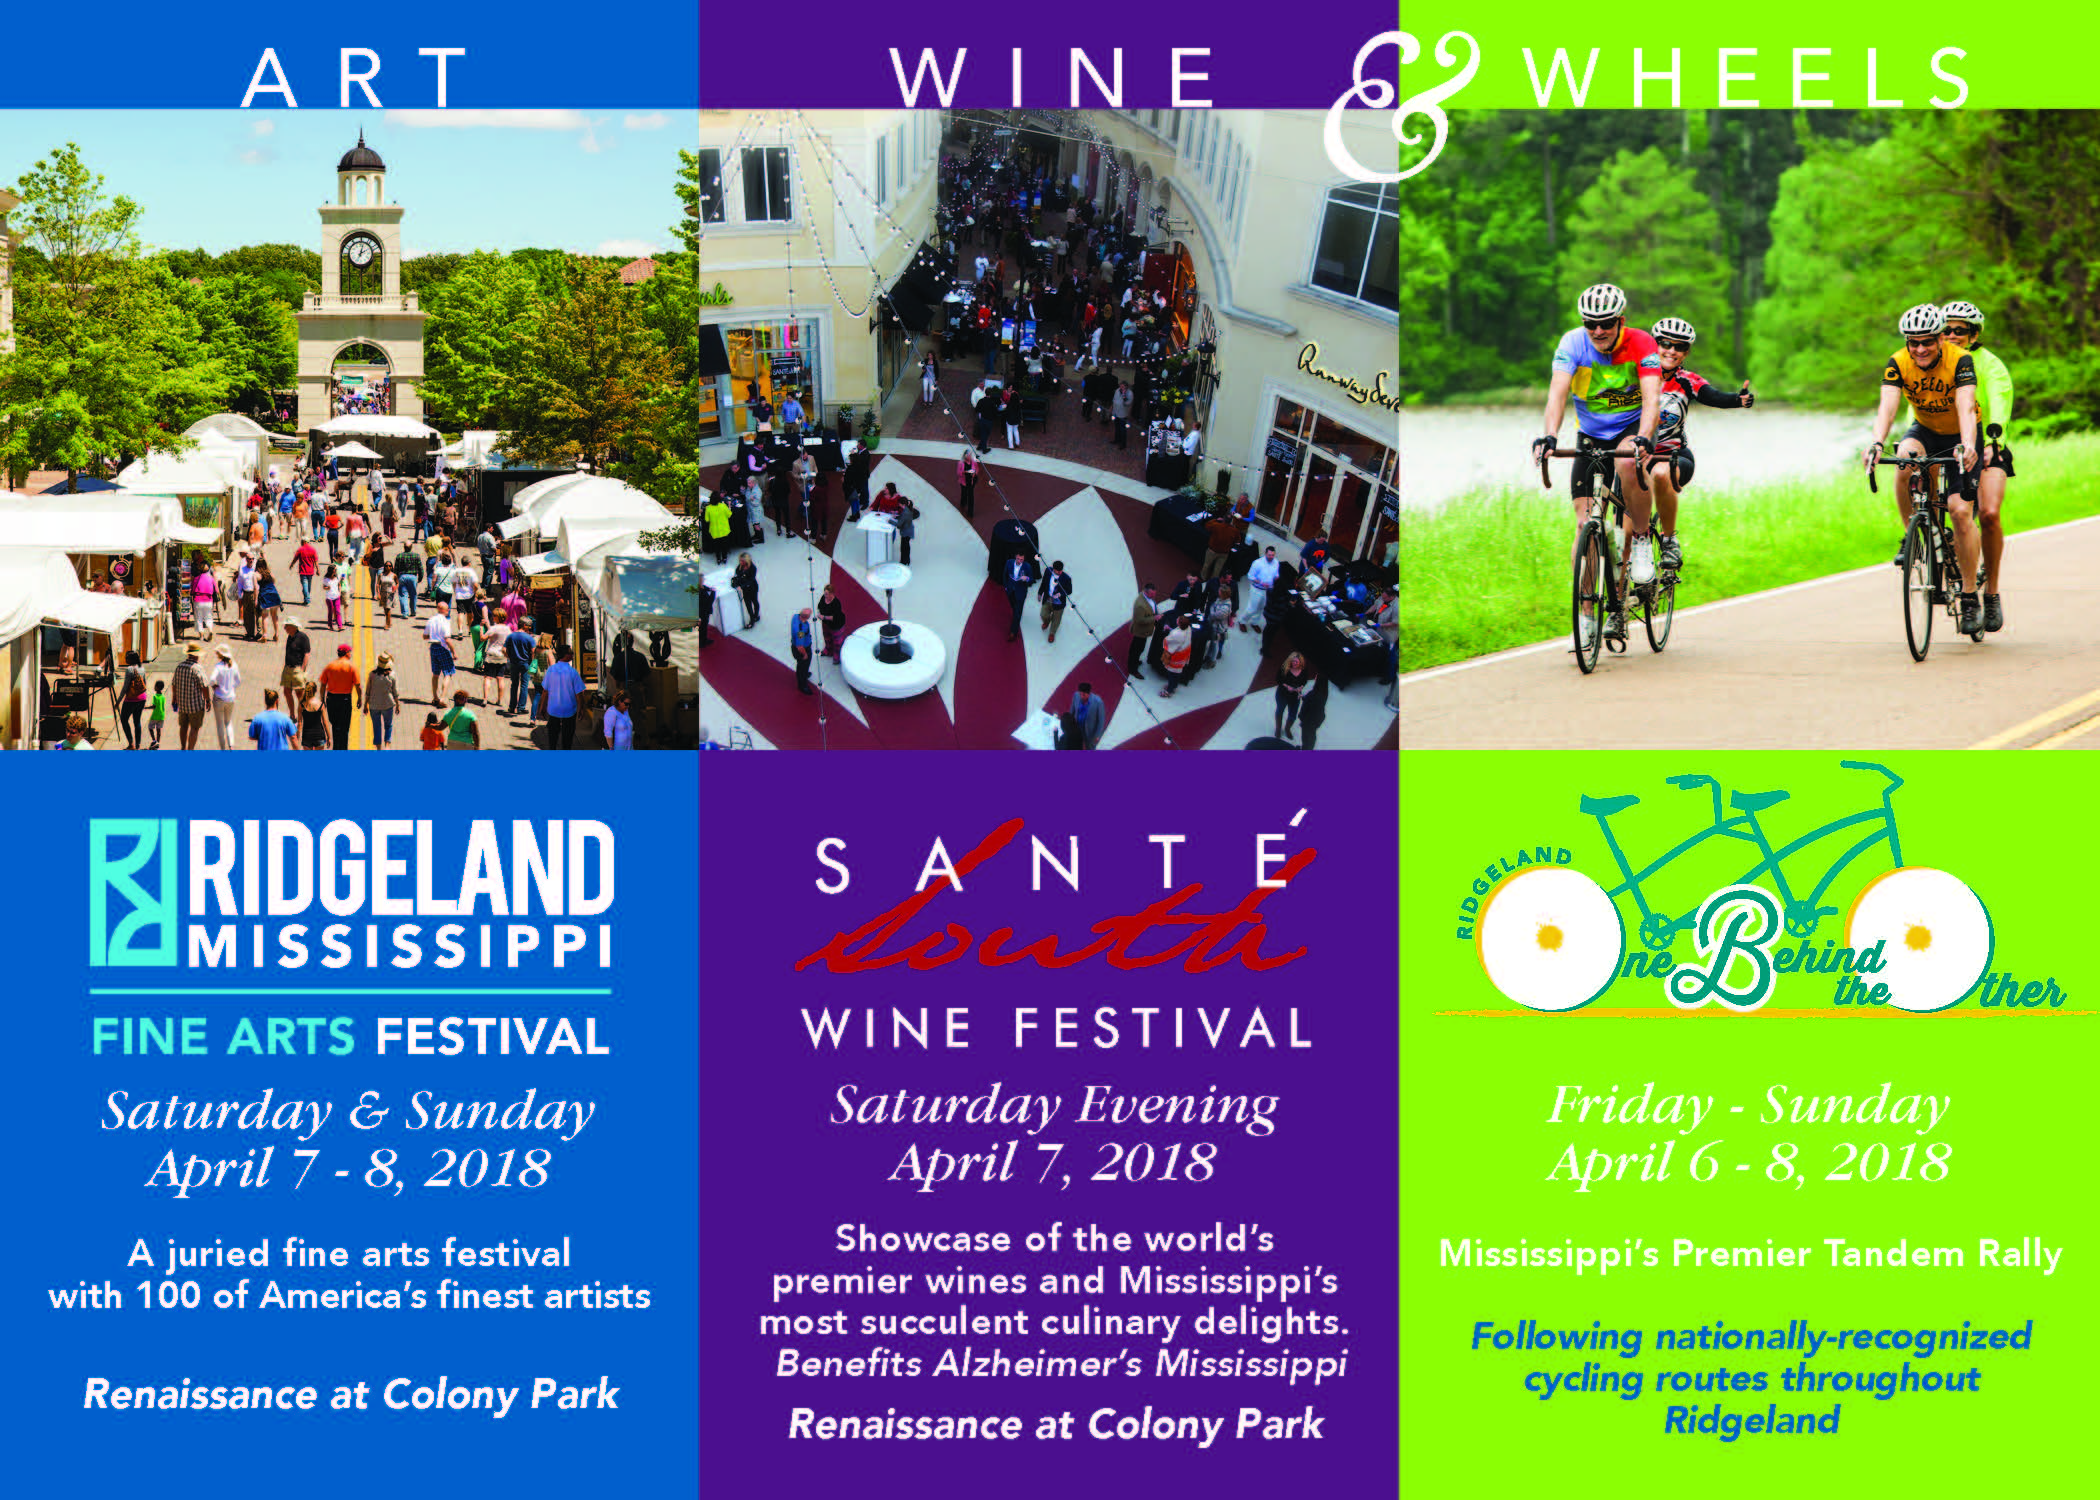 Art Wine & Wheels Weekend April 2018 Ridgeland MS